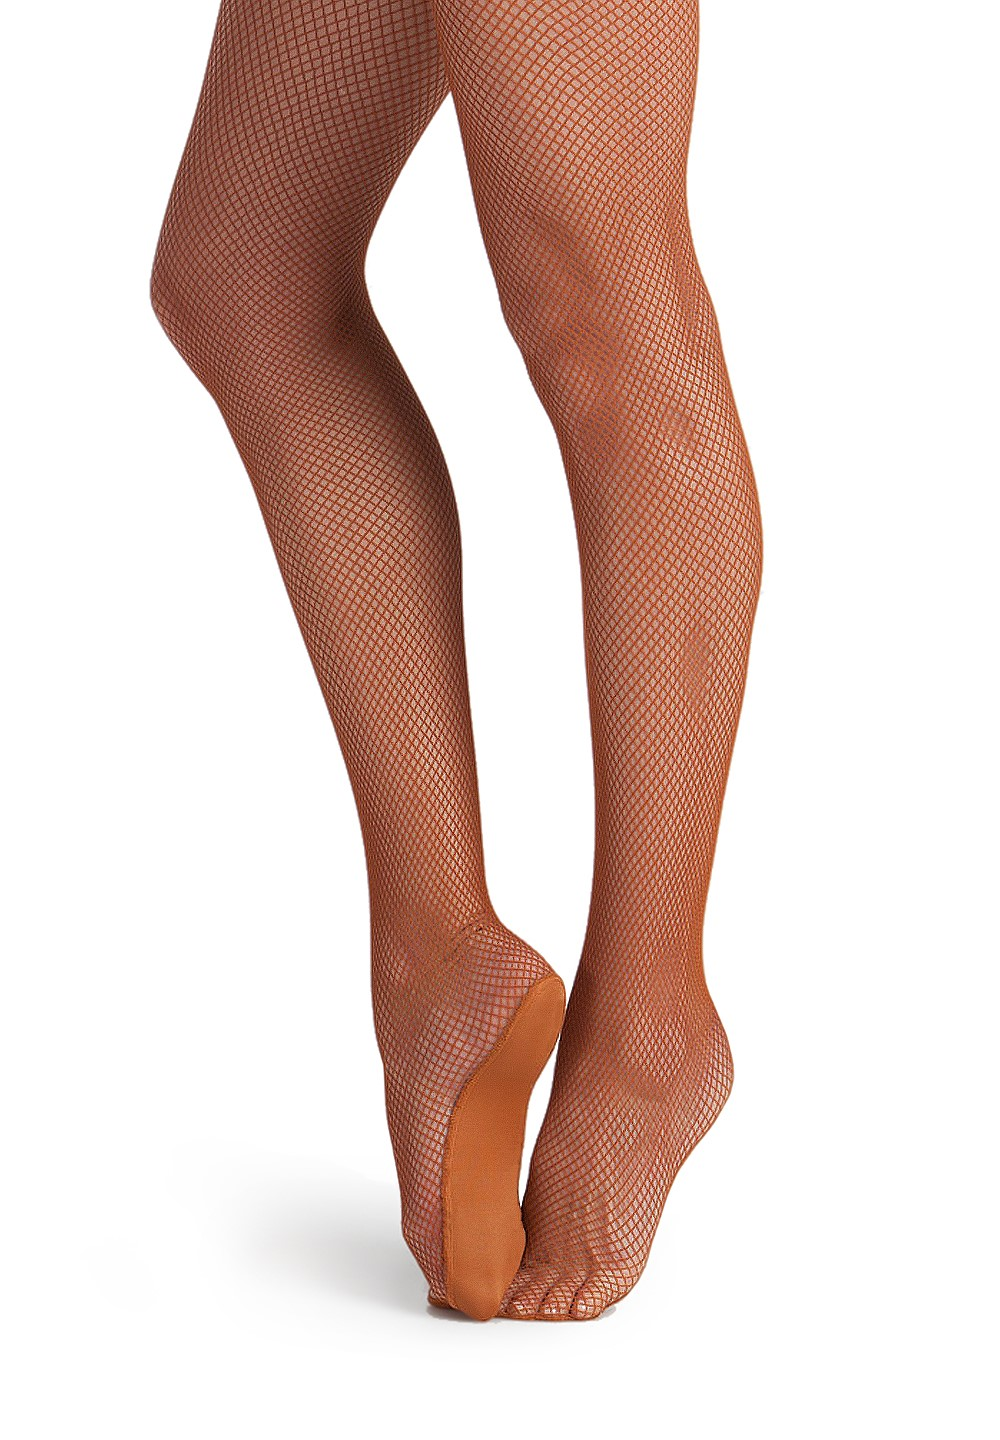 5c50c89a67199 Fishnet Tights - Danskin Professional Seamless Fishnet Tights ...